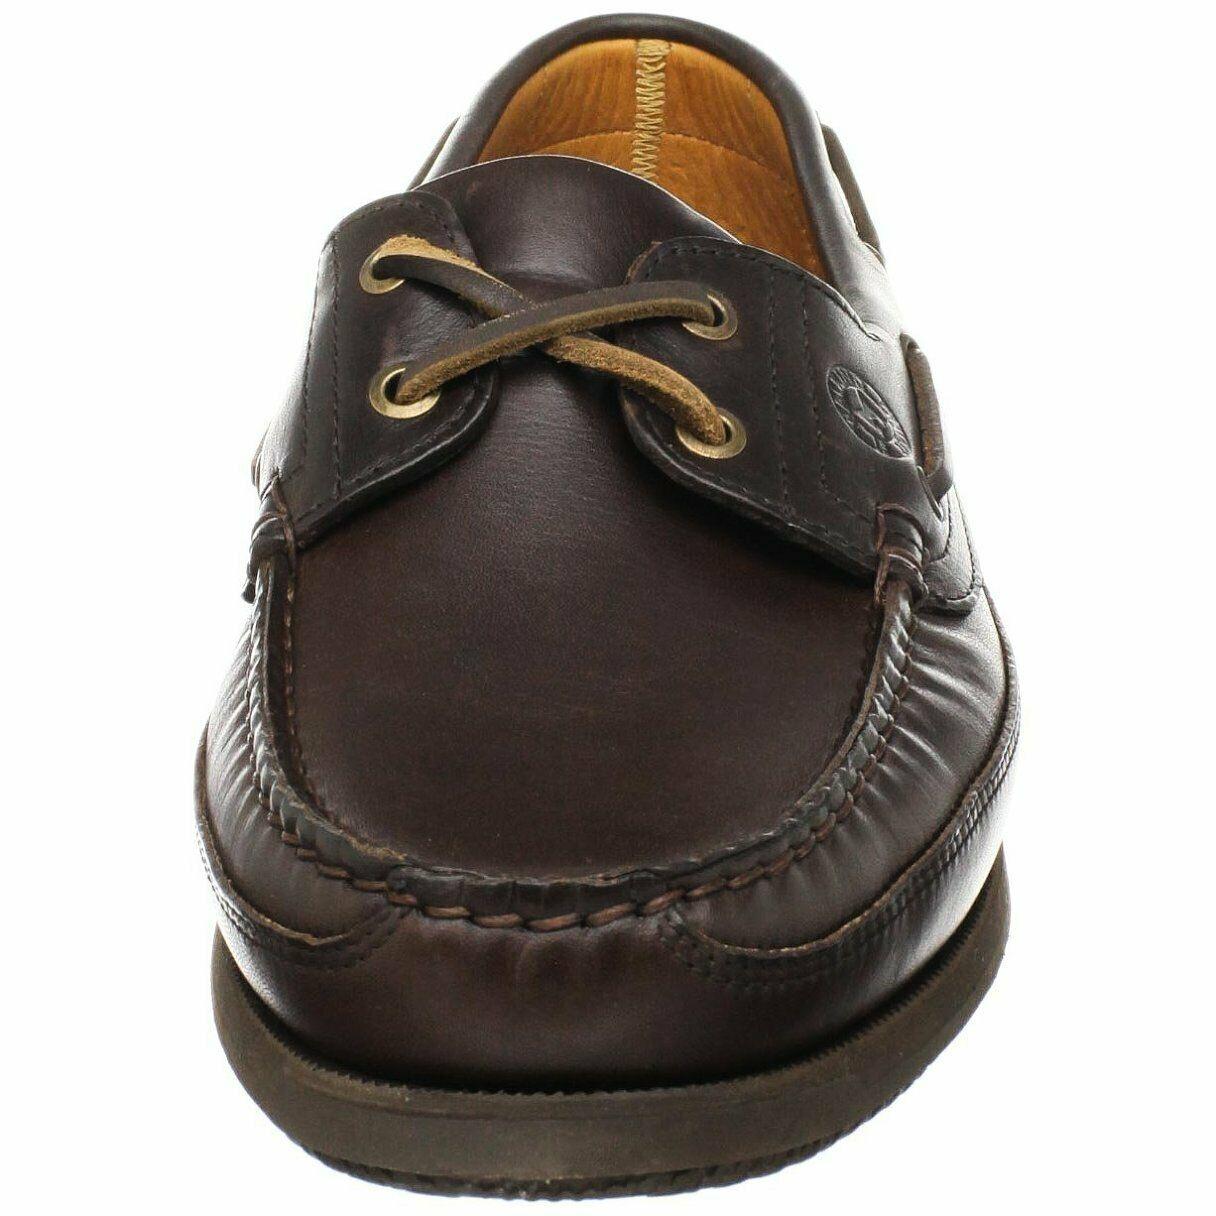 504eaffc56 Mephisto Men's Hurrikan Boat Shoe - Choose and 50 similar items